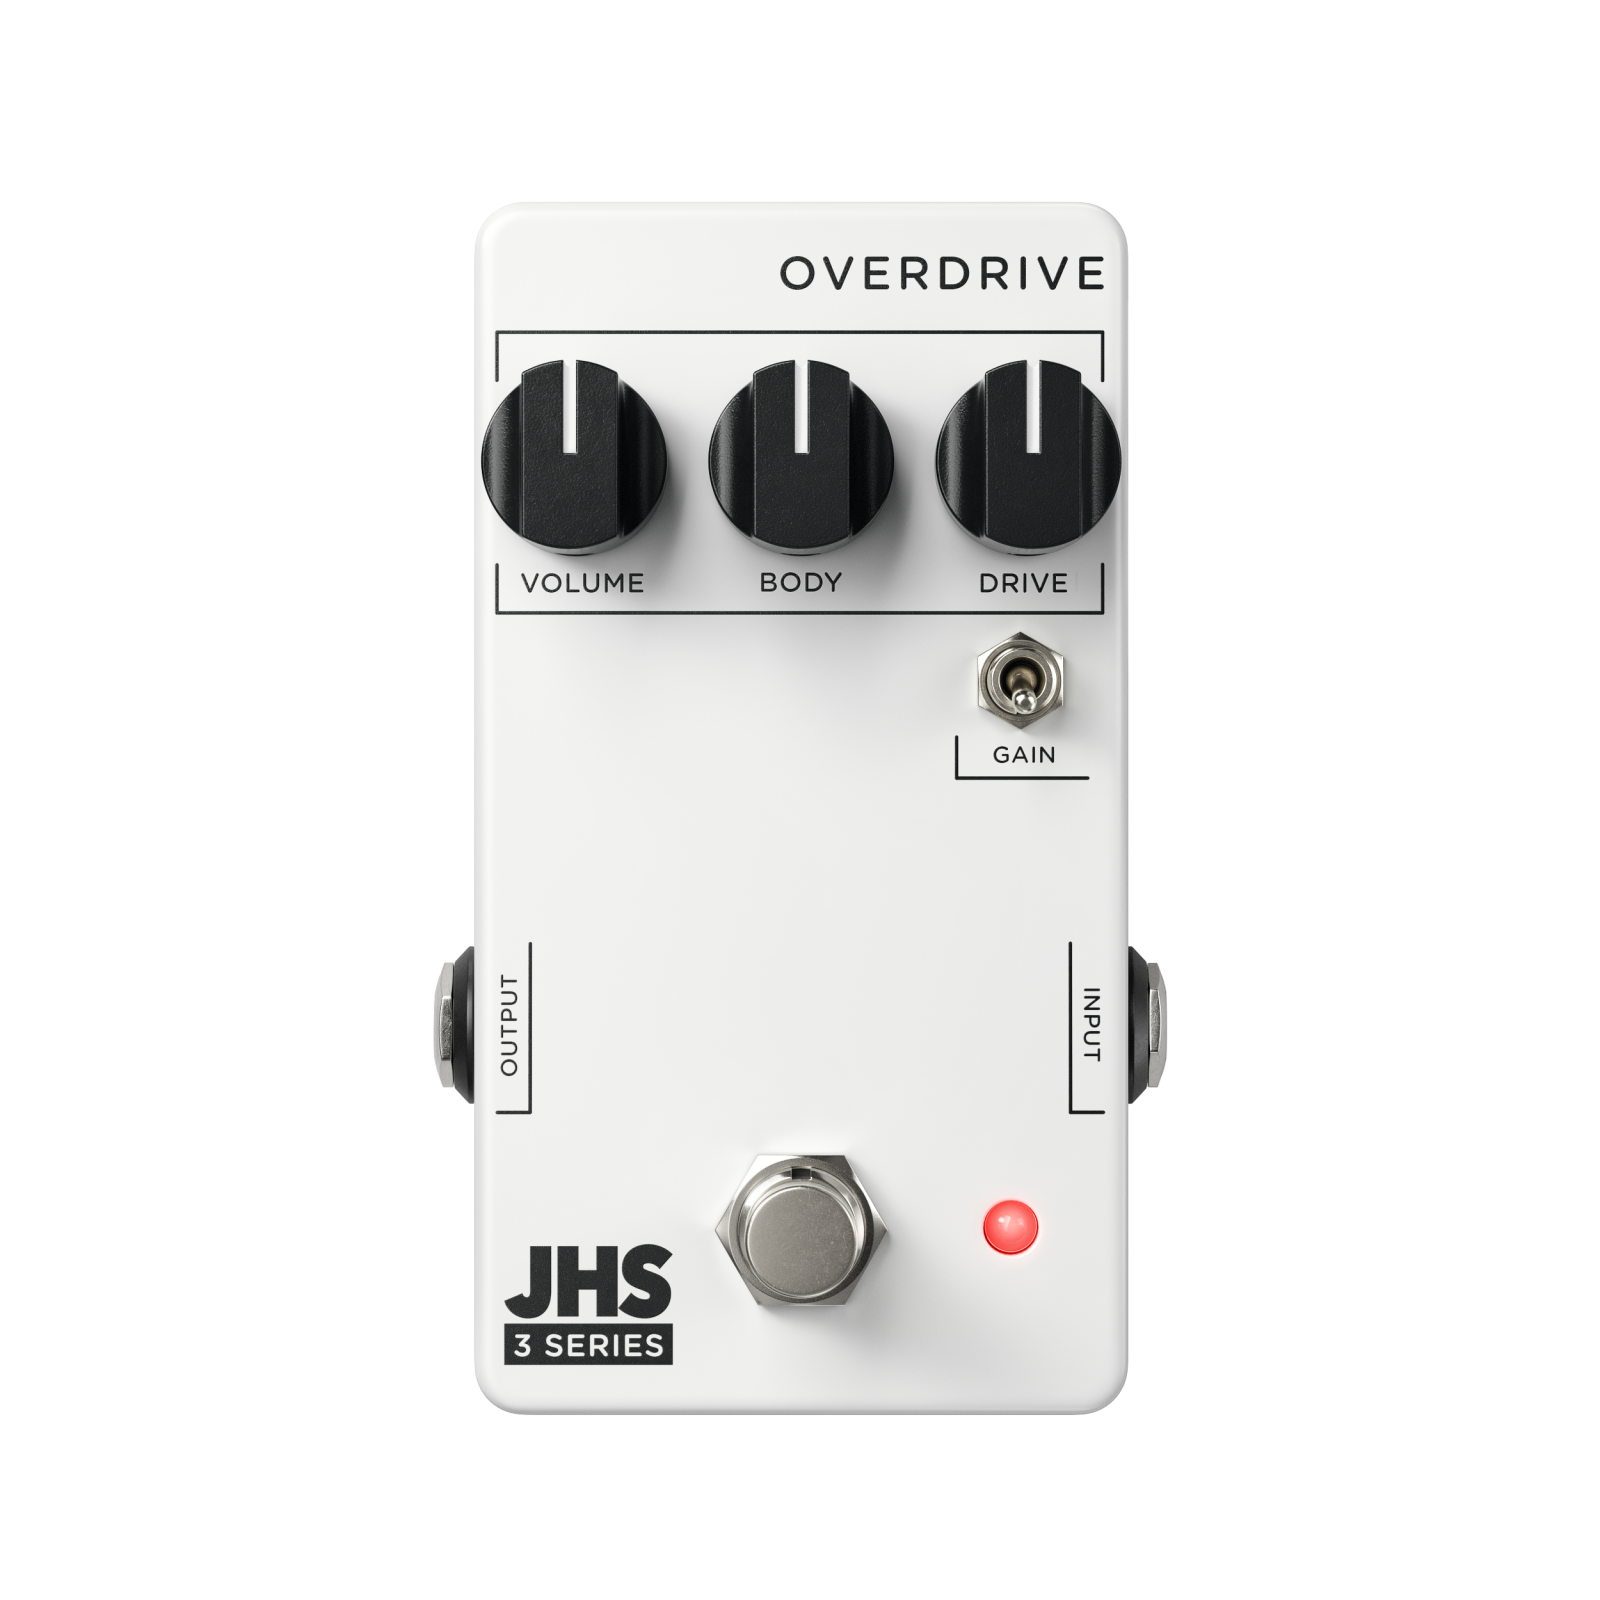 JHS 3 Series - Overdrive